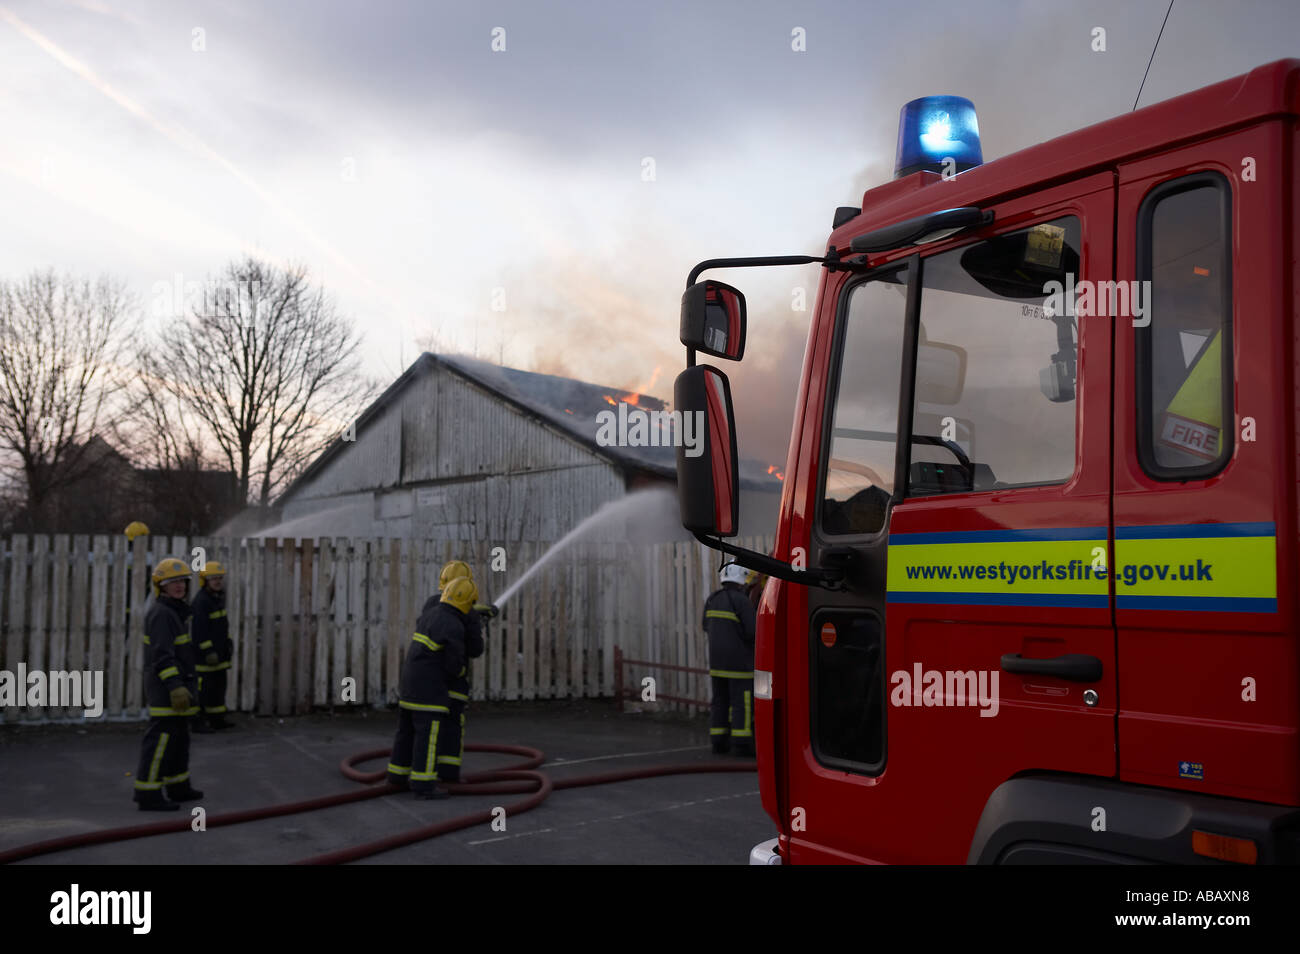 FIRE SERVICE ATTACKING BURNING BUILDING - Stock Image